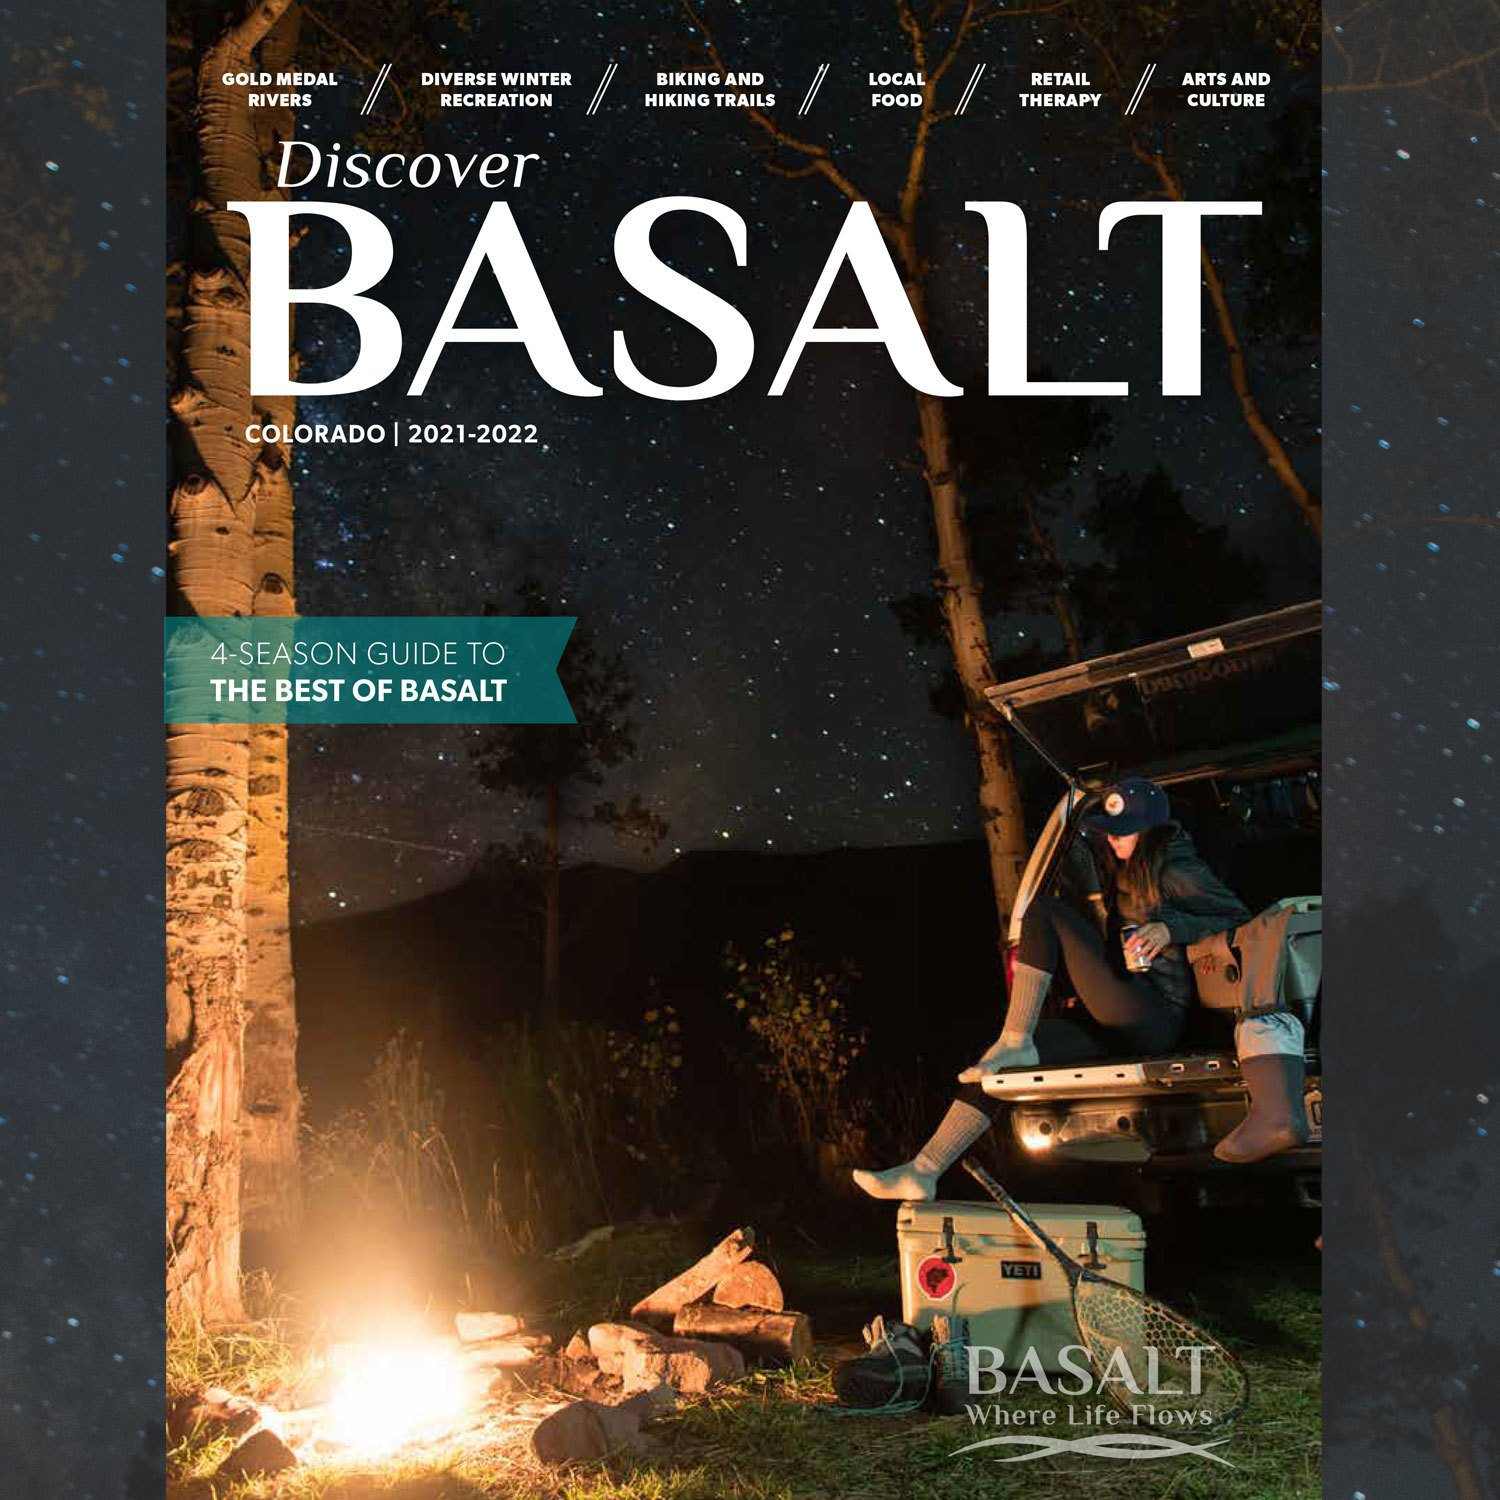 2021 Discover Basalt magazine cover; photo by Shannon Outing